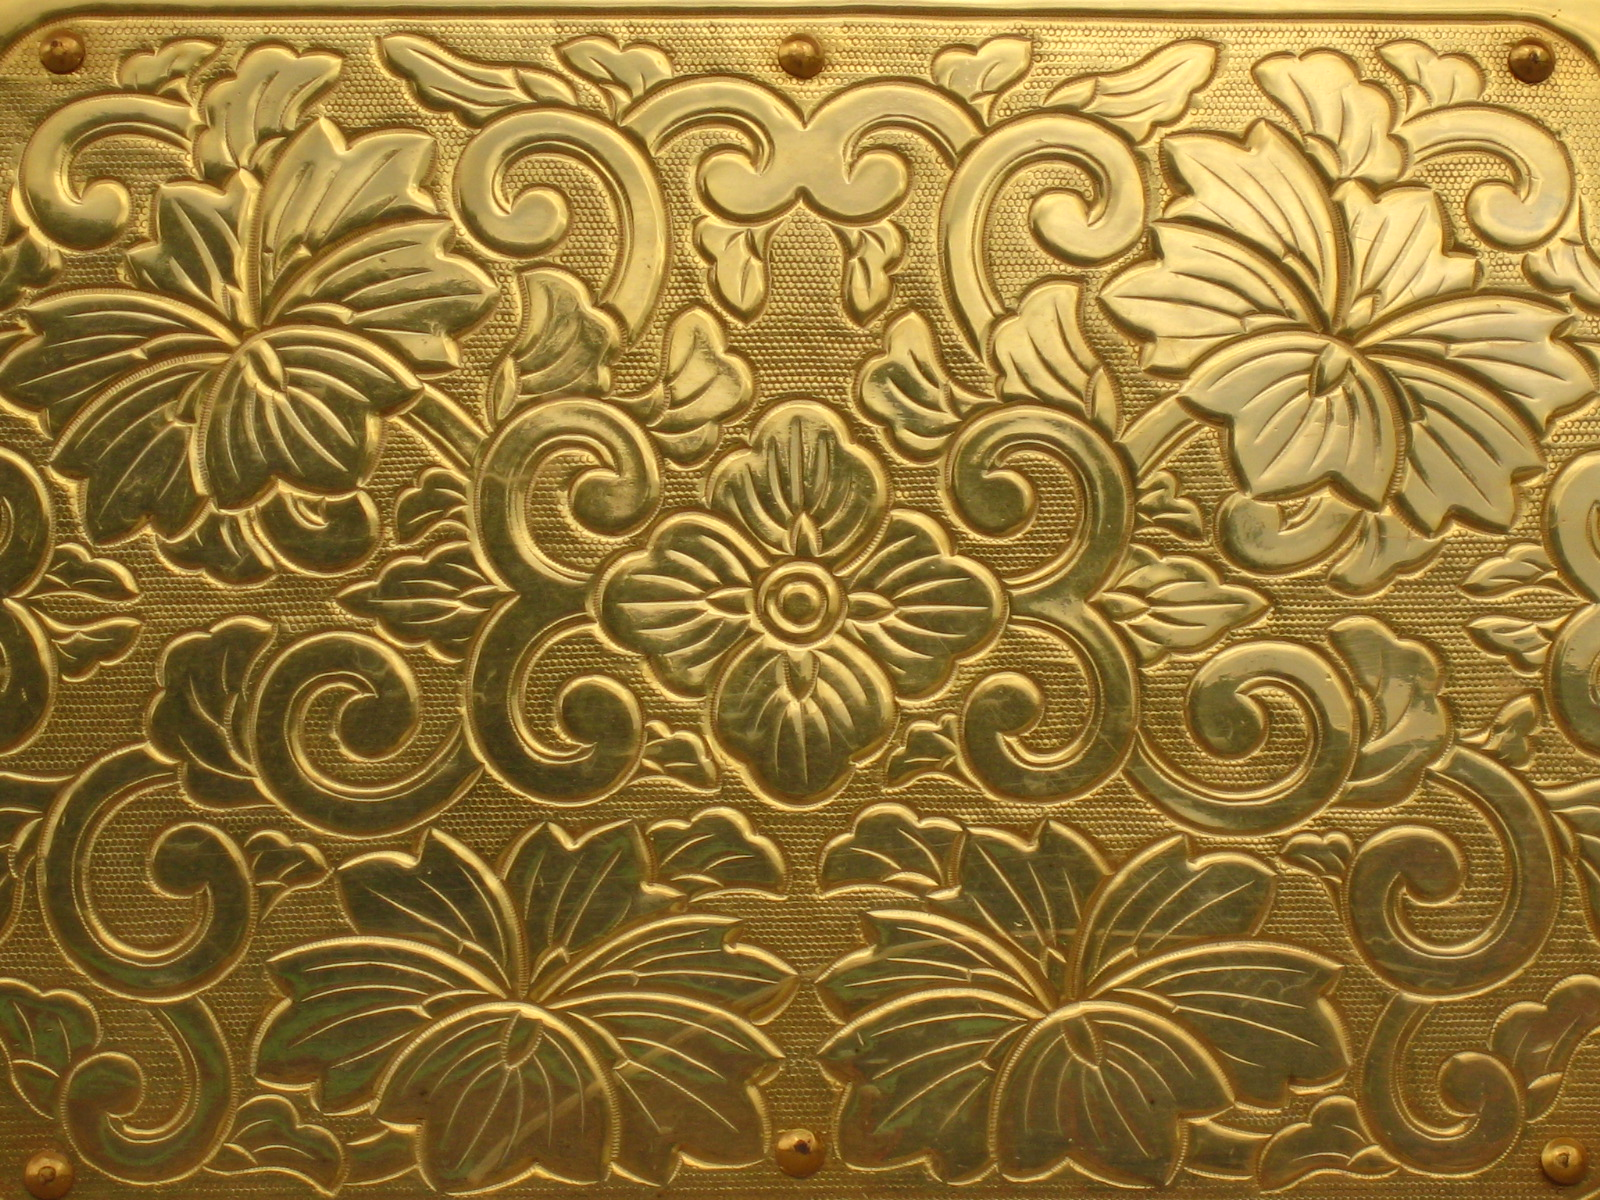 Dark Textures clipart golden texture Shiny Designers Free Gold For